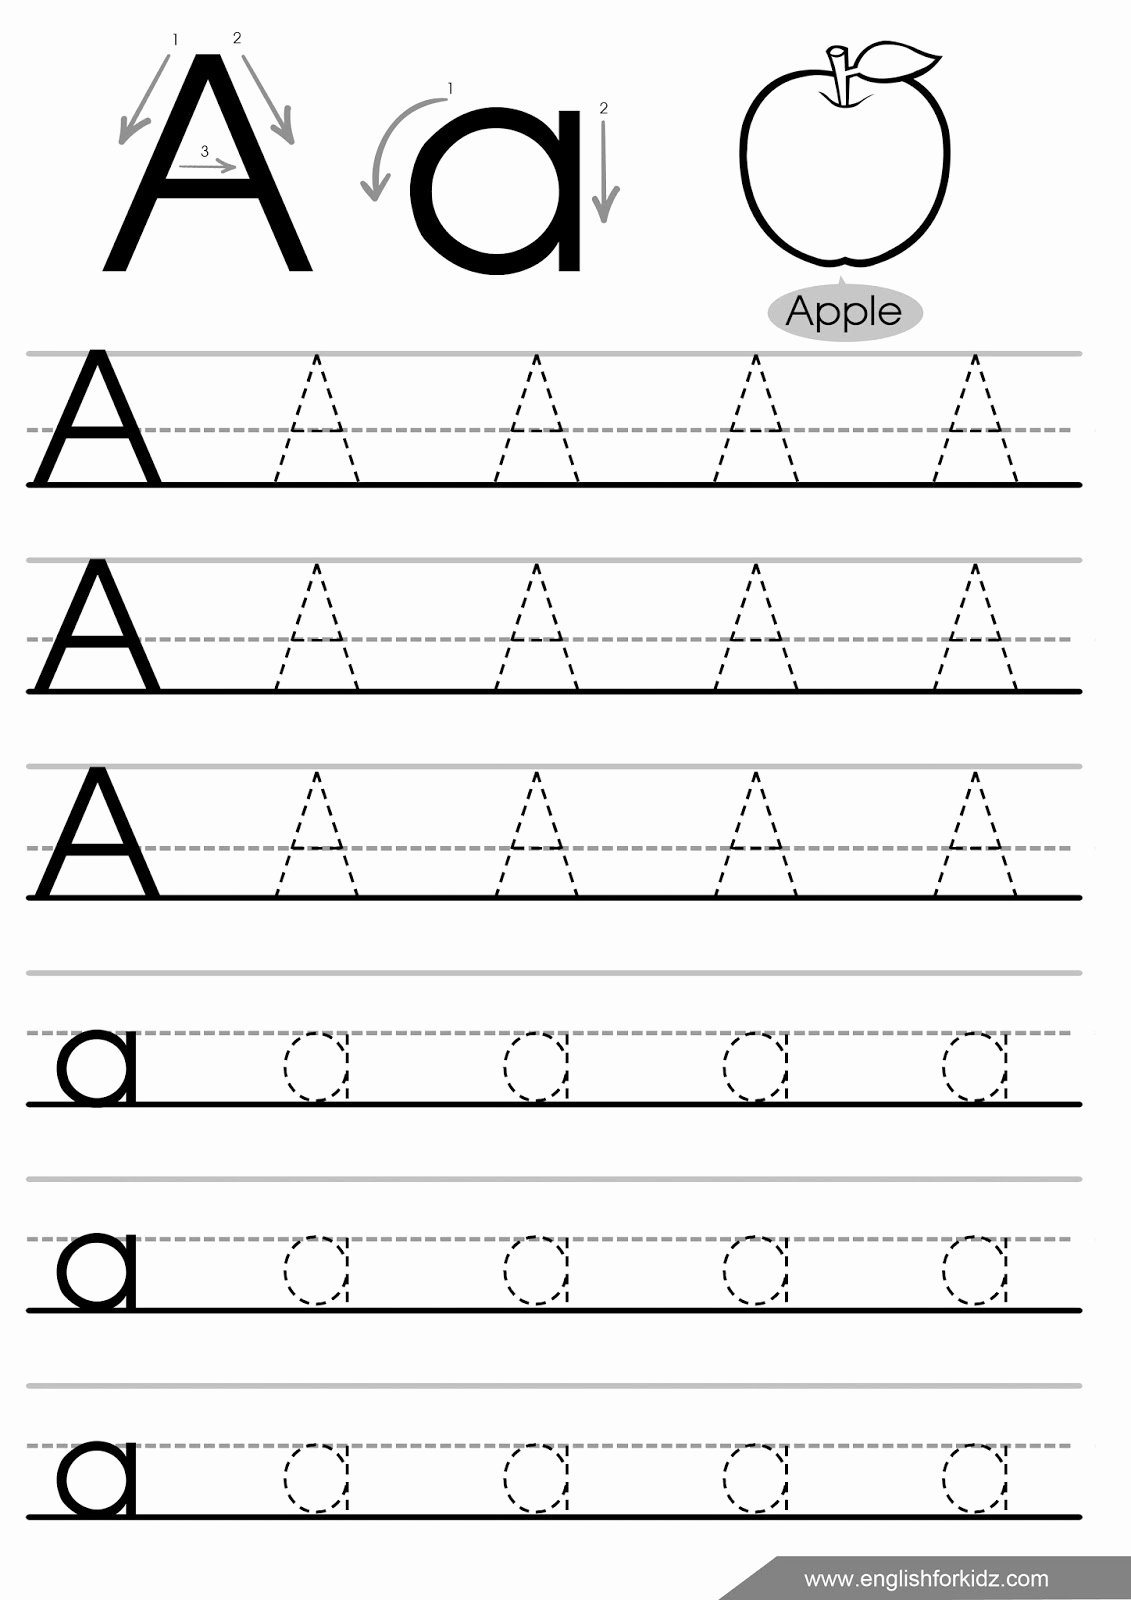 Alphabet Worksheets for Preschoolers Tracing Best Of Math Worksheet Alphabet Tracing Worksheets for